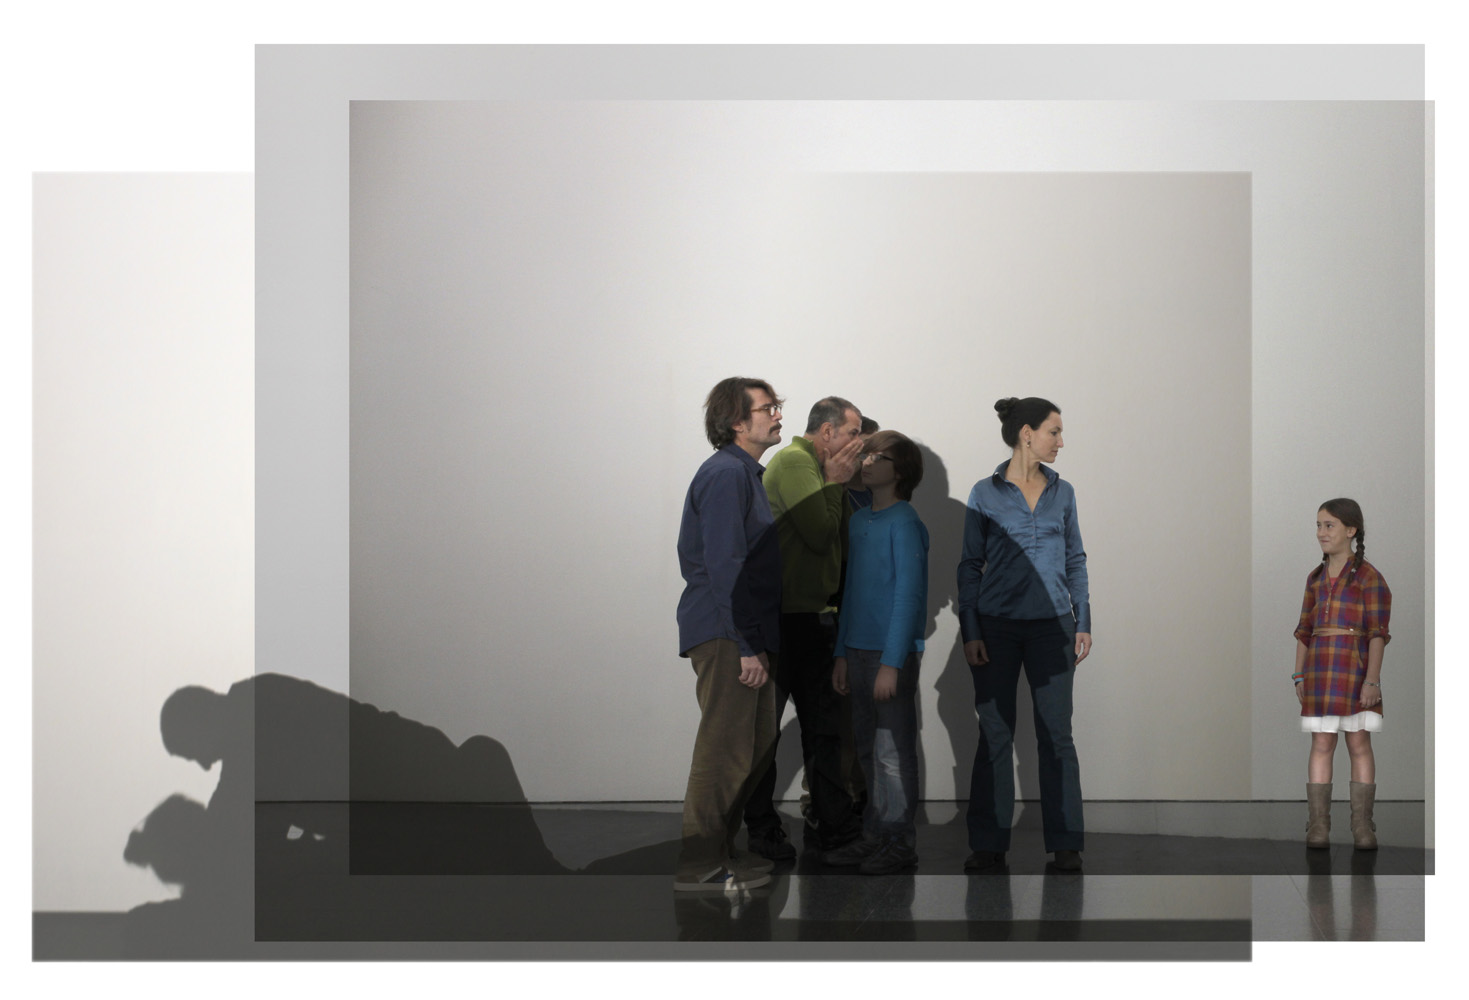 Family Ties , 2012, Prints on barite paper, 6mm forex, aluminum frame 111 x 163.2 cm Edition 3 + 1AP Edition 3 of 3